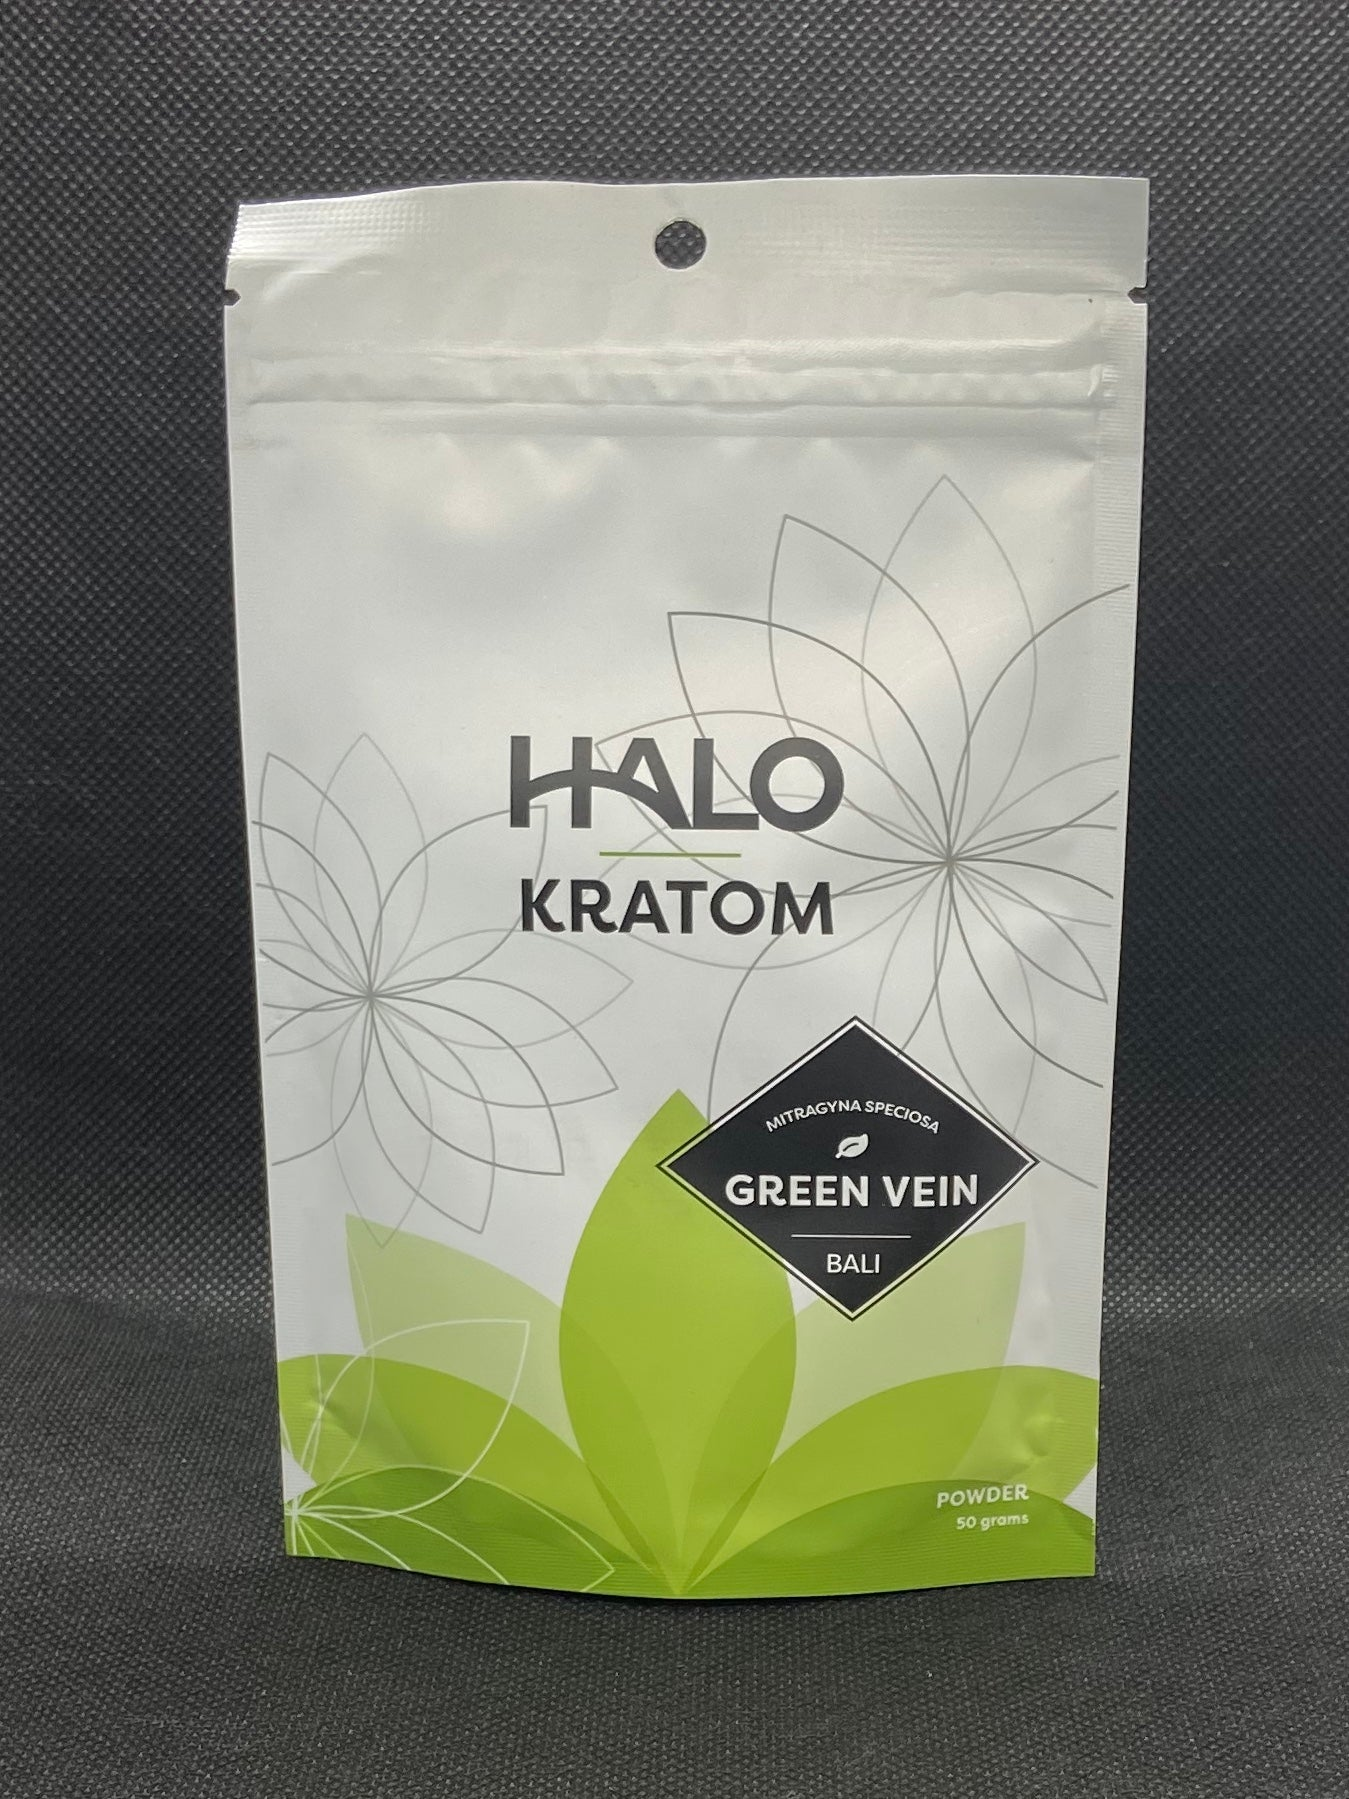 Halo Green Vein Kratom Powder